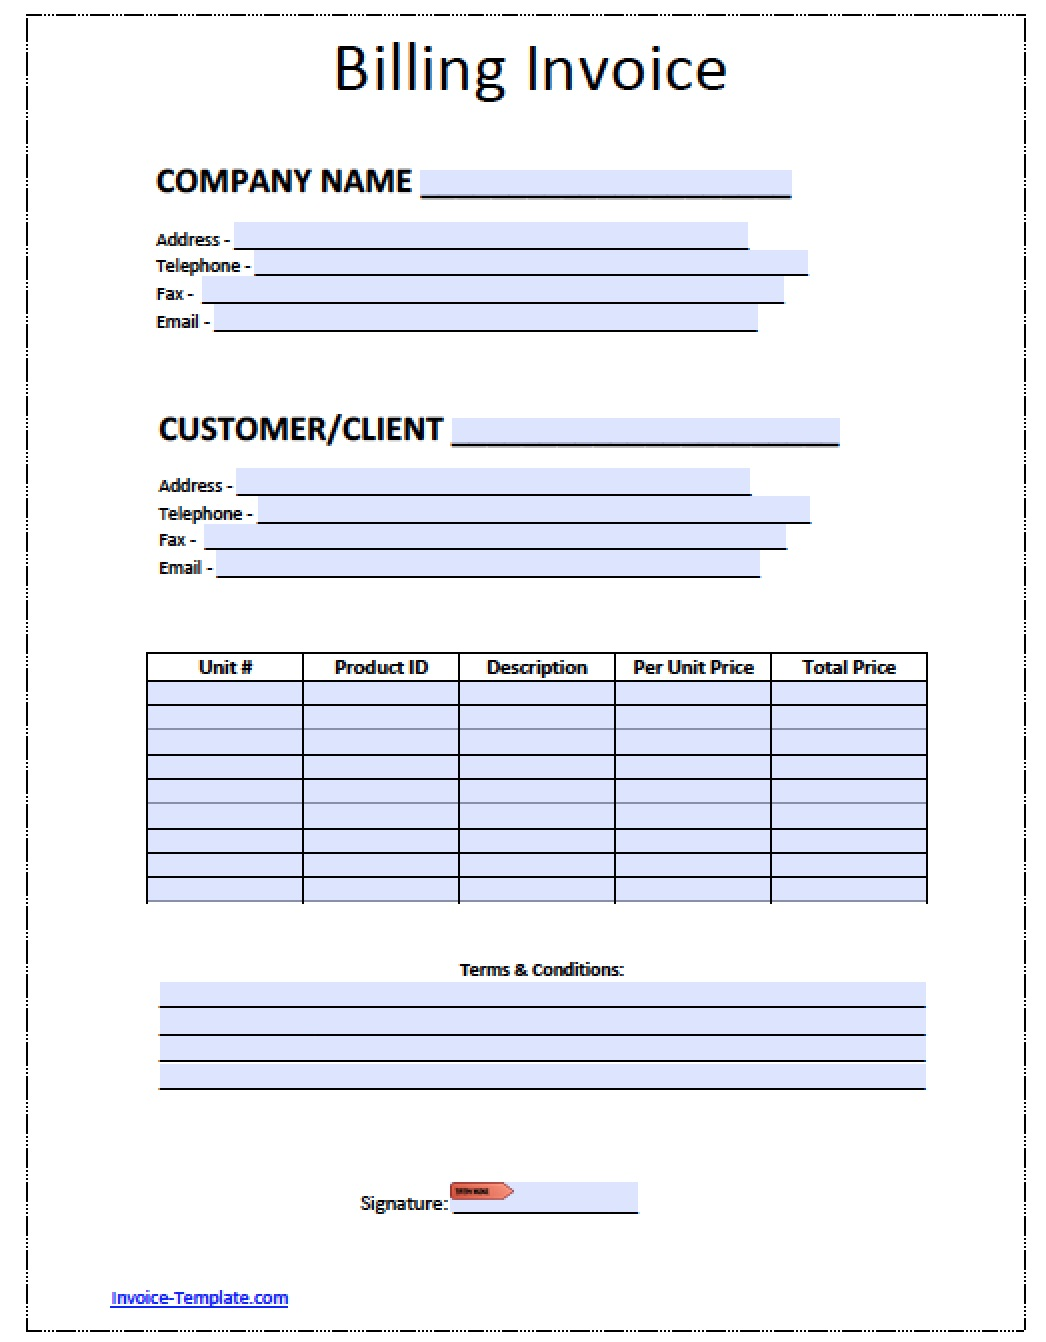 printable billing invoice – Printable Free Invoices